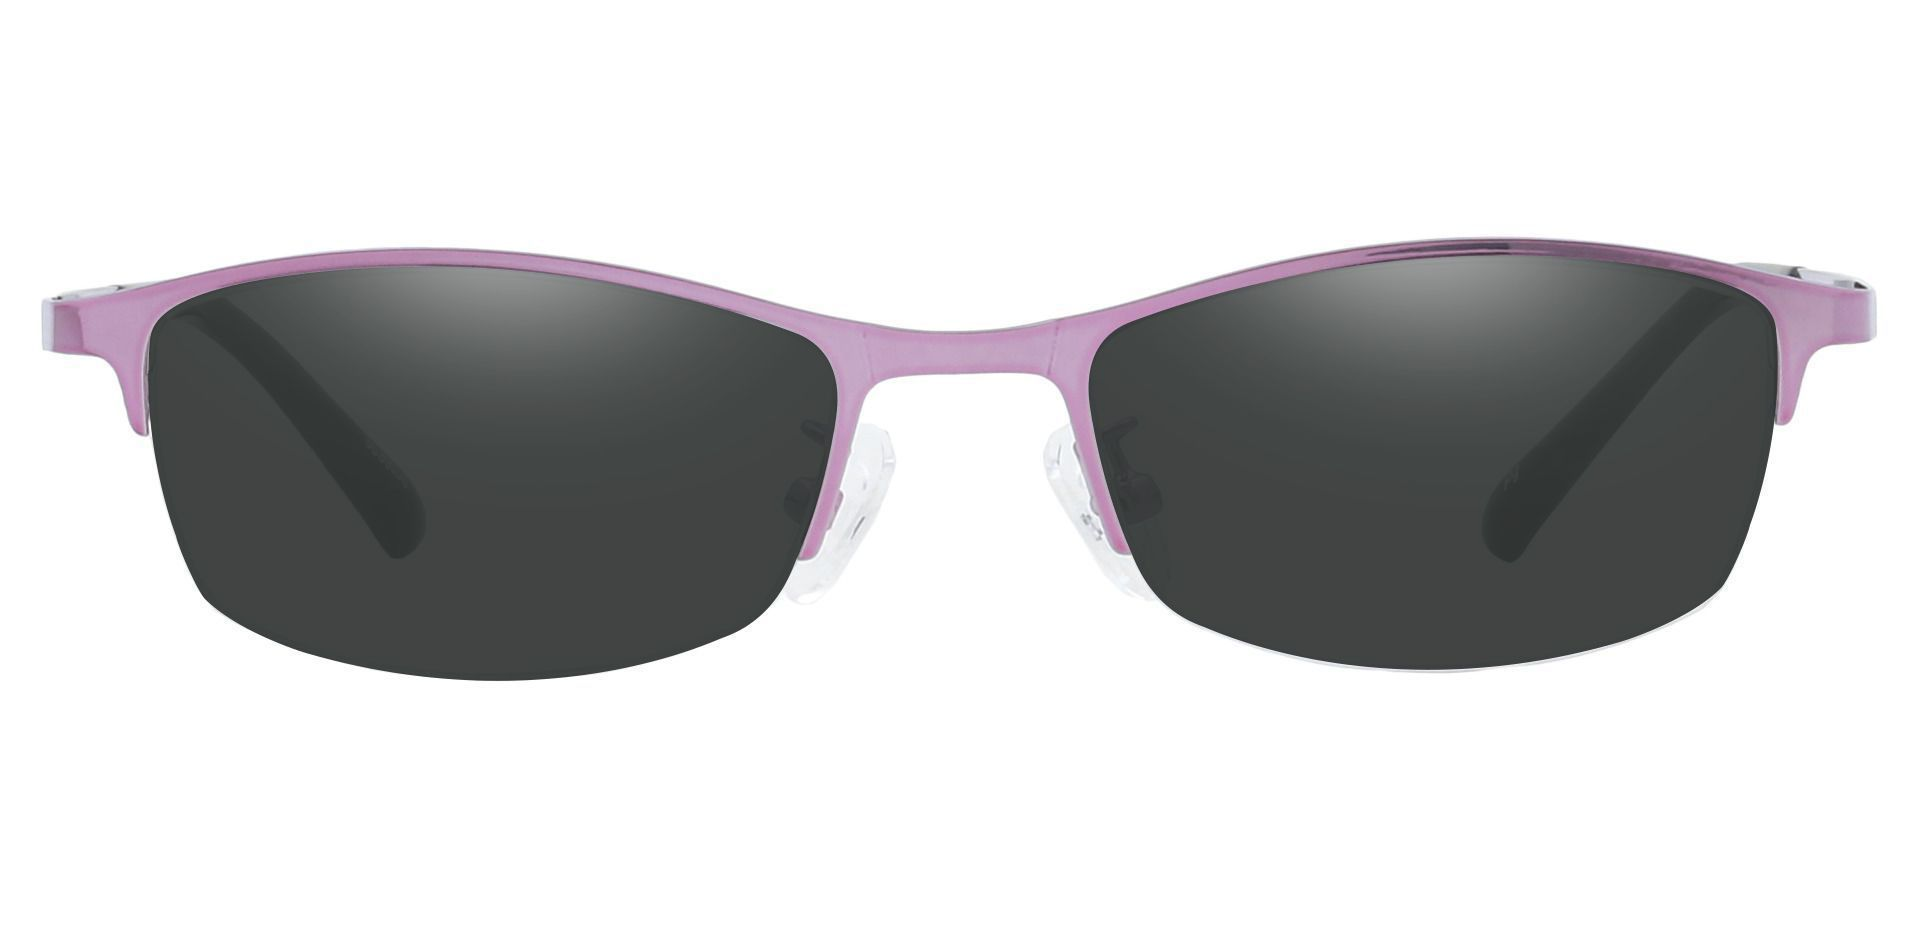 Eliza Rectangle Single Vision Sunglasses -  Pink Frame With Gray Lenses